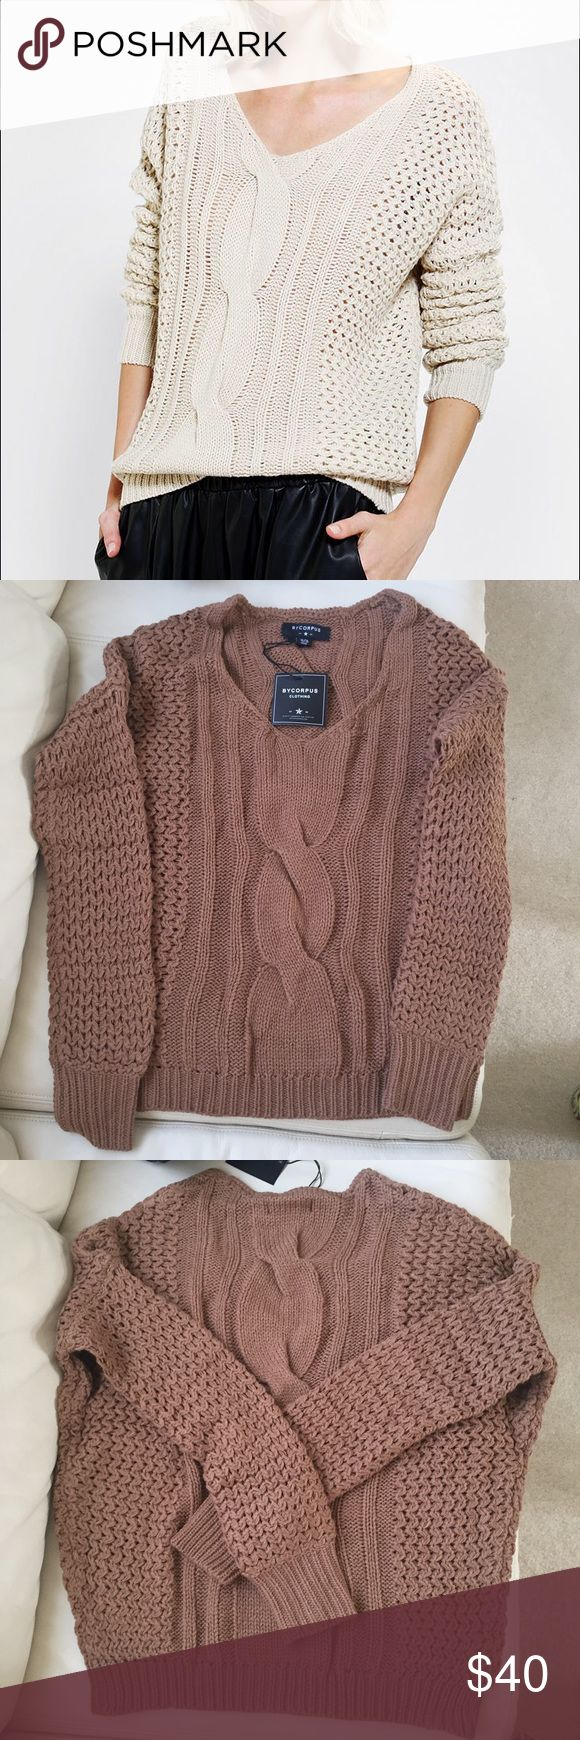 NEW urban outfitters cable knit sweater Brand is by corpus, one of the vintage inspired brand sold at uo. This sweater is SO SOFT!! I'm selling the color honey, which is a rich golden brown that is so neutral and perfect for winter and spring! I'd wear this with light wash skinnies or a vintage pair of boyfriend jeans. Because the stitching is so thick, you can rock this without a bra, like the model! Fits true to size. Can also fit a Small. Tags: nastygal asos topshop Abercrombie Zara…